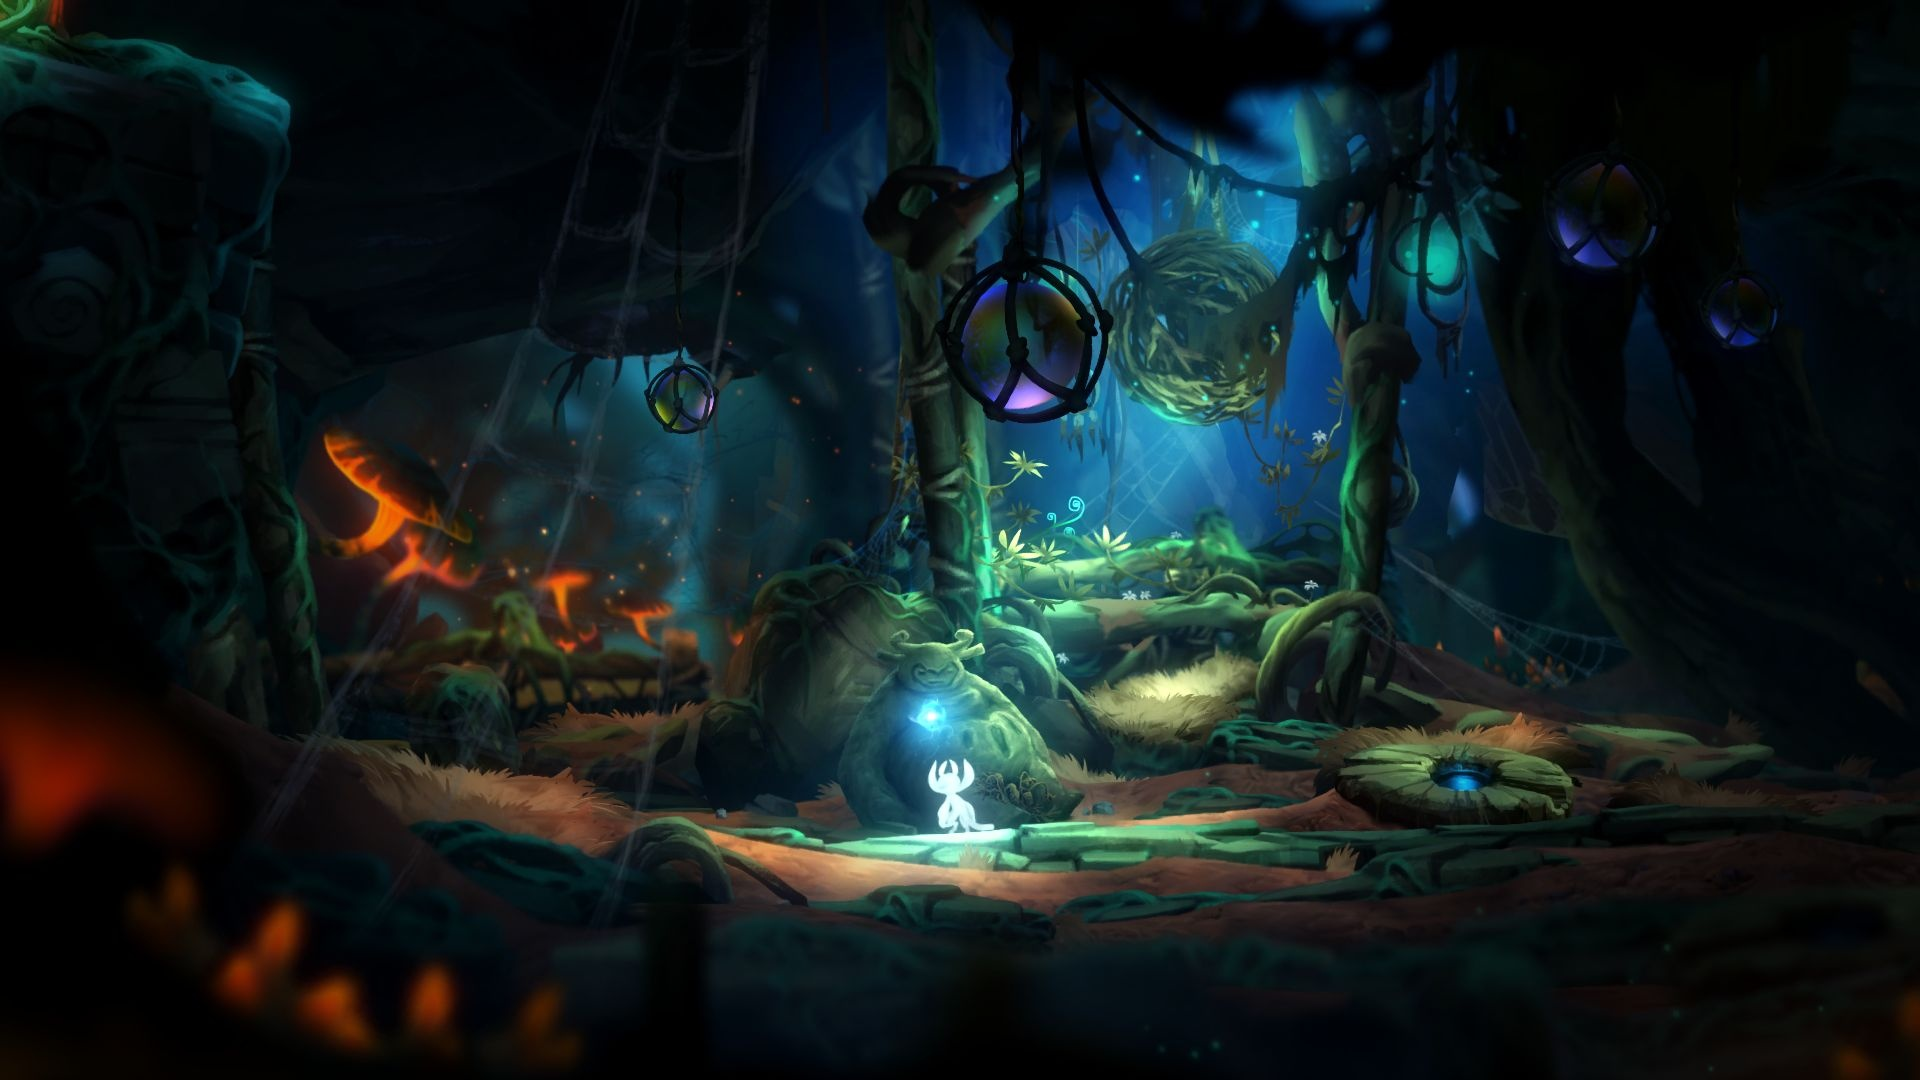 ori_and_the_blind_forest_definitive_edition_screenshot_20160301164816_6_original